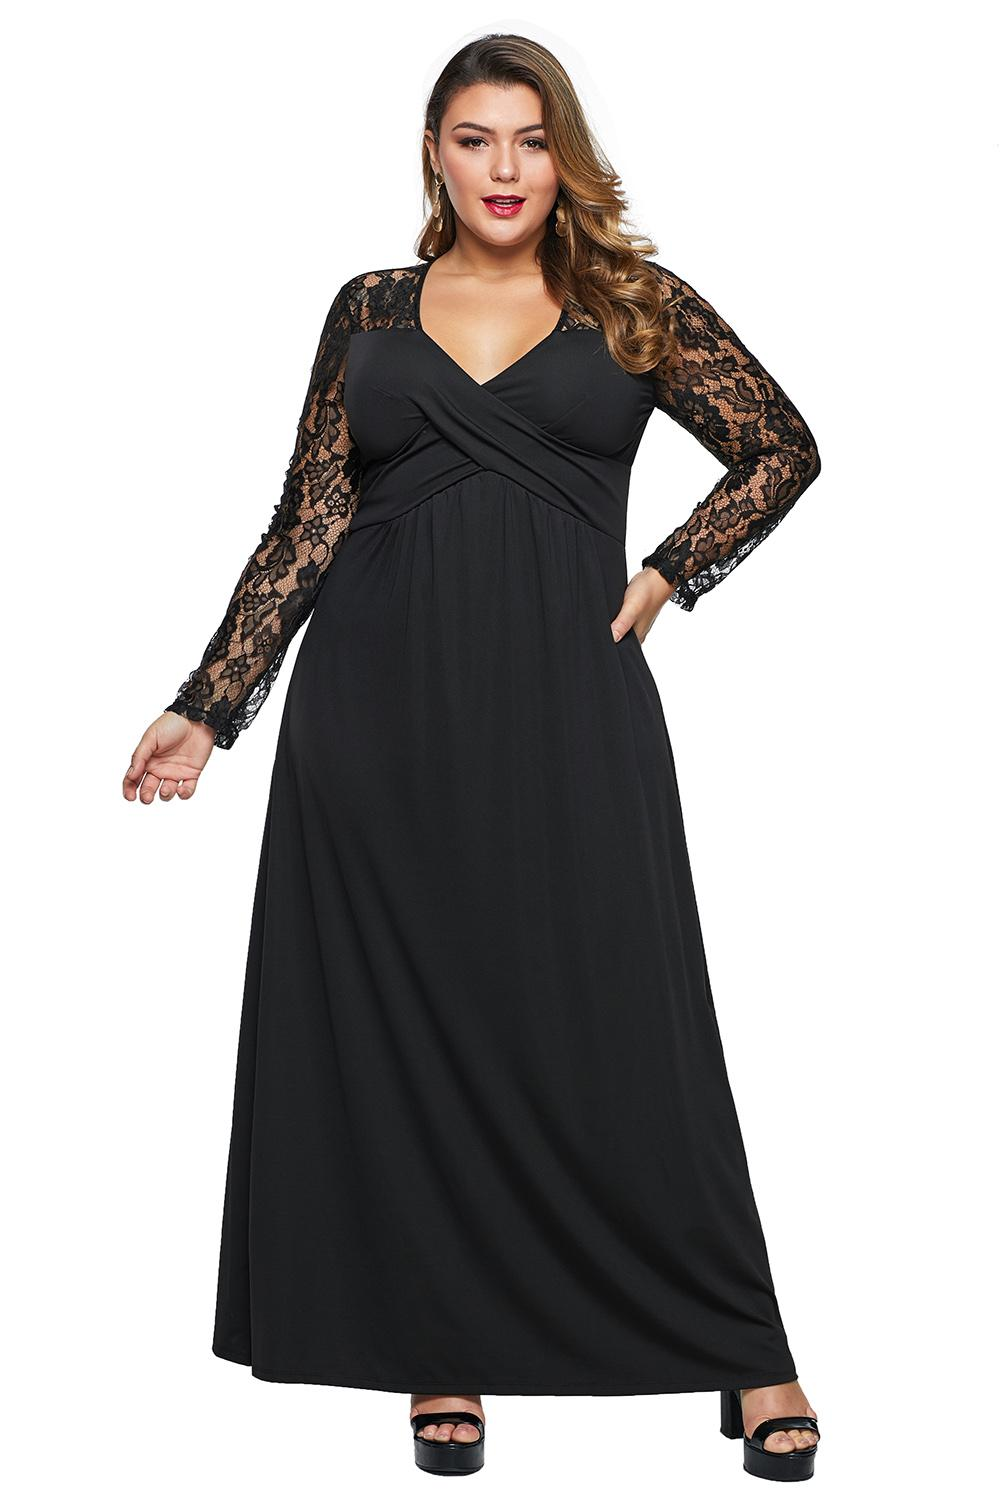 Black Lace Sleeve Cross Wrap Bust Ruched Back Plus Size Dress